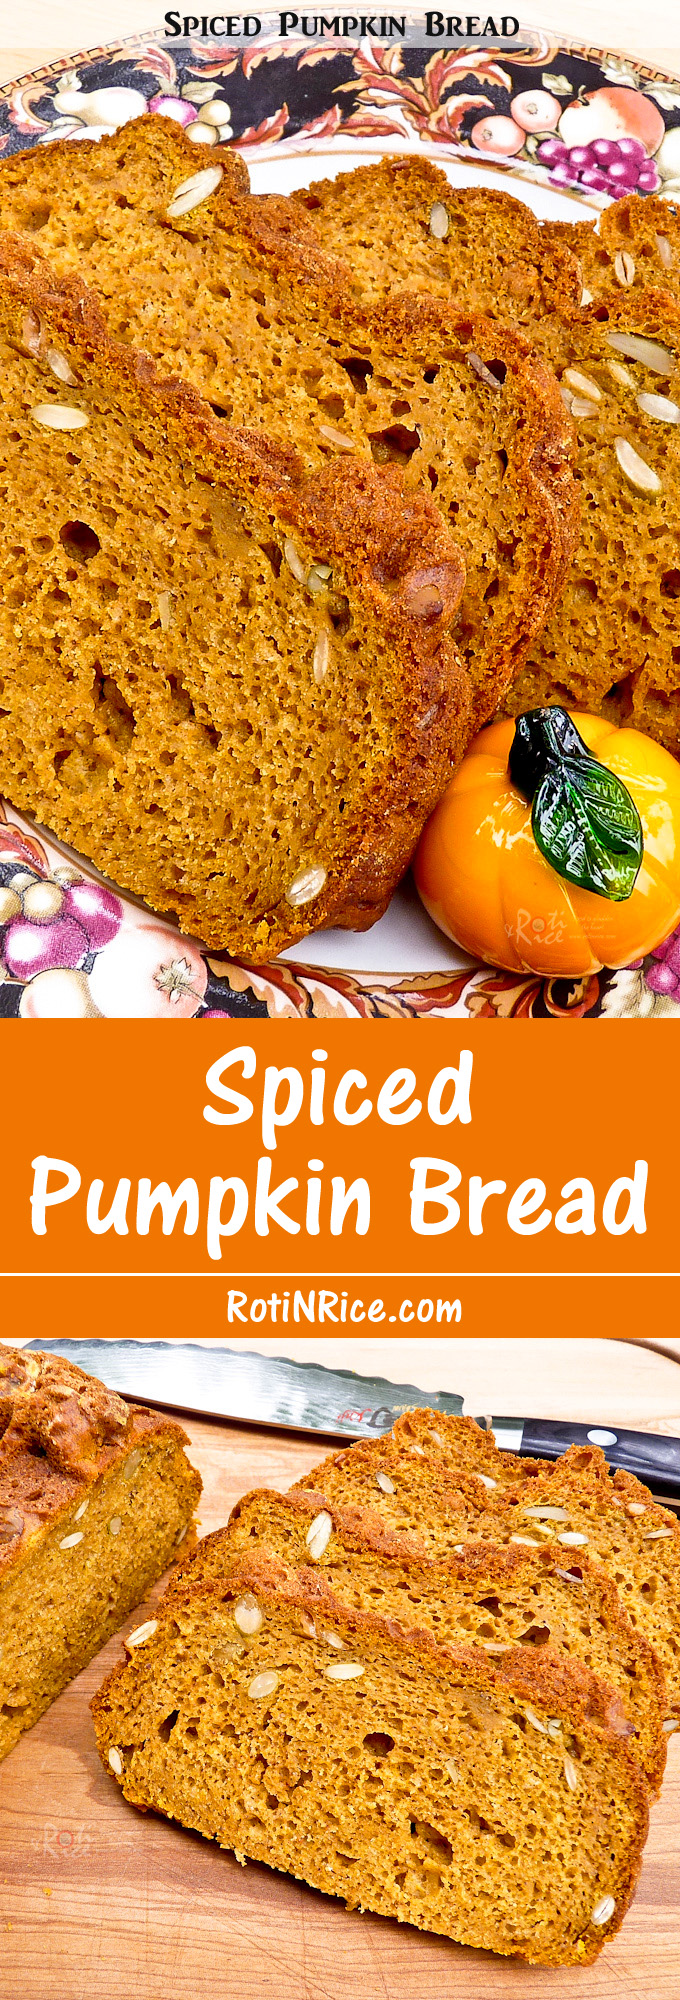 Moist and fragrant Spiced Pumpkin Bread flavored with warm spices. The addition of toasted pumpkin seeds provides crunch and texture. | RotiNRice.com